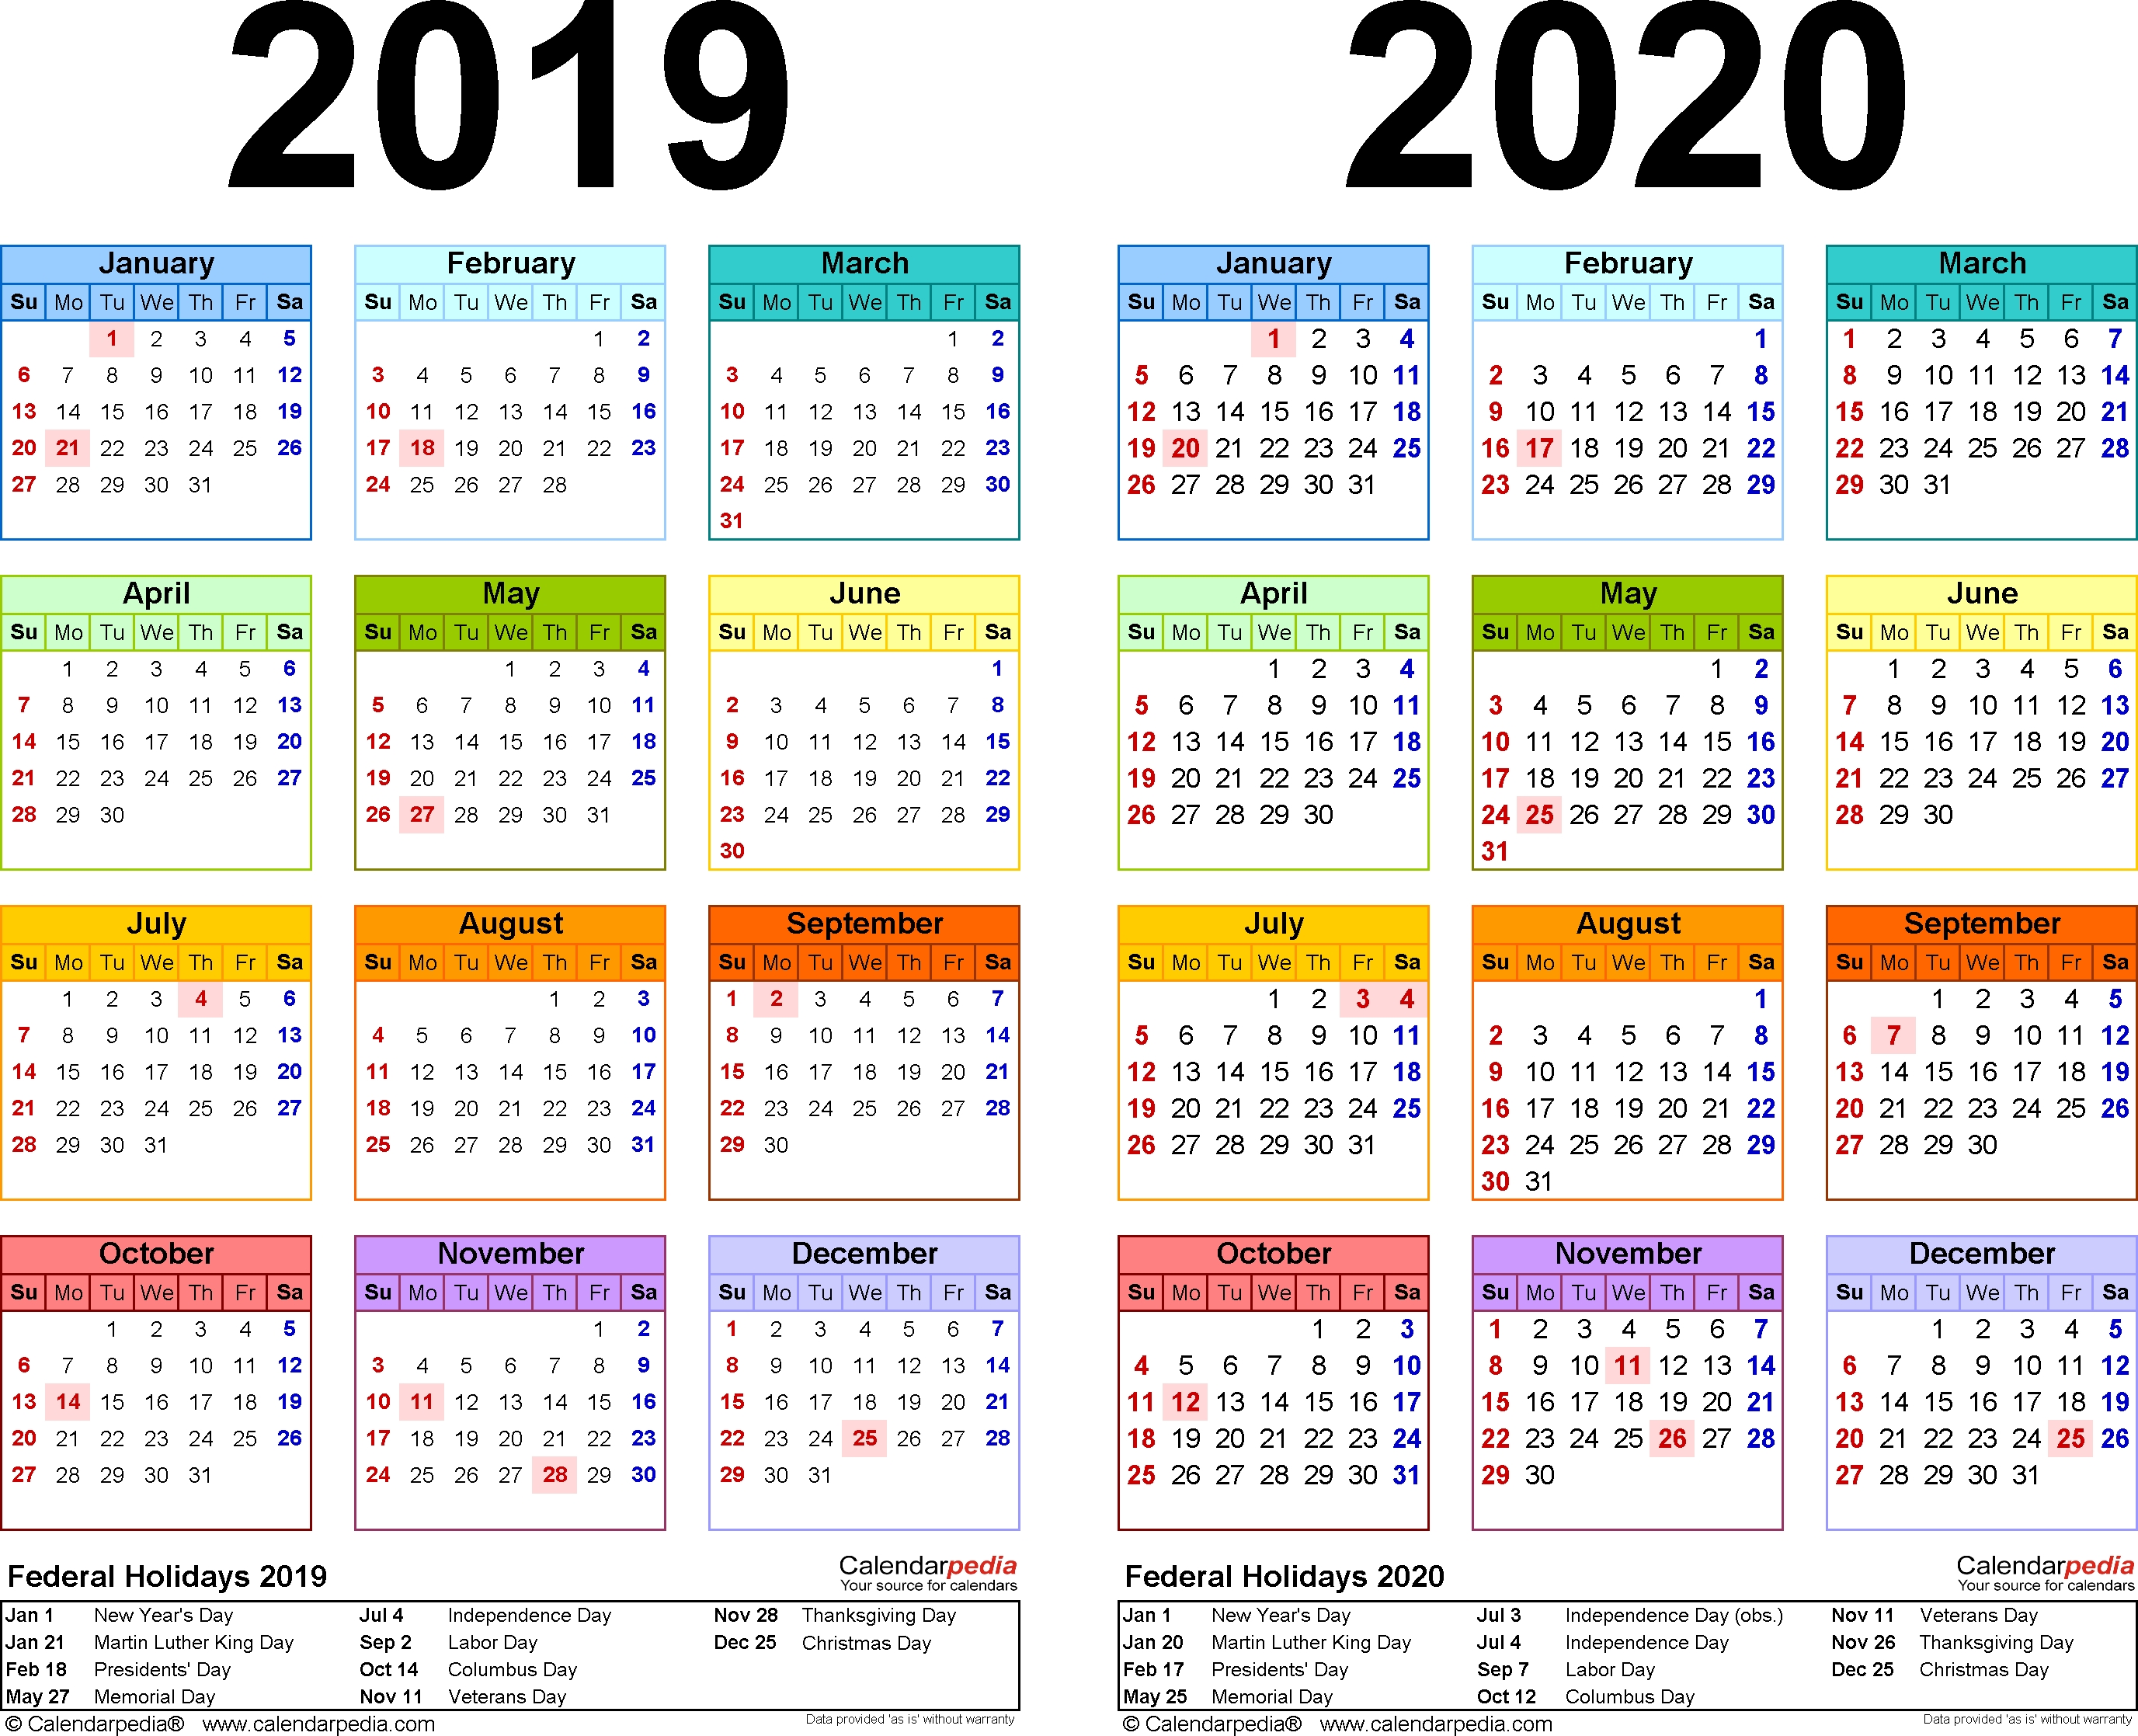 2019-2020 Calendar - Free Printable Two-Year Word Calendars inside 2019/2020 Calendar On One Page